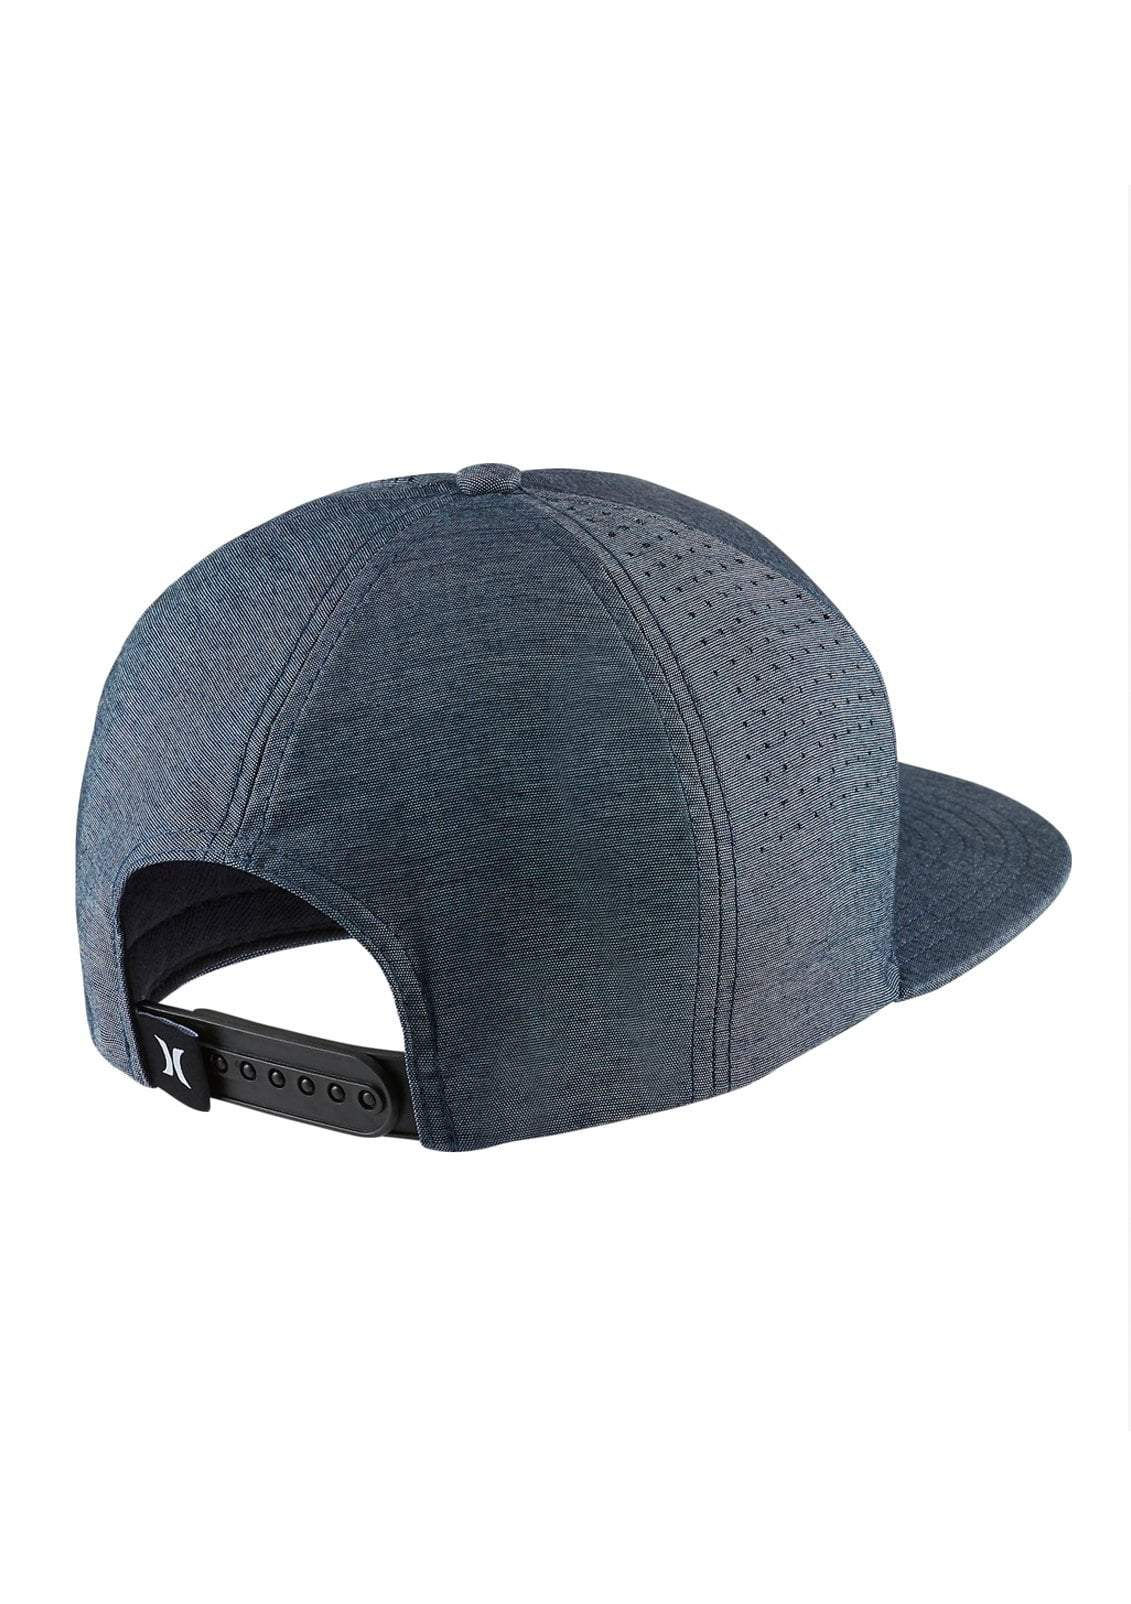 on sale d482c 5c27c Dri-Fit Staple Snapback Hat